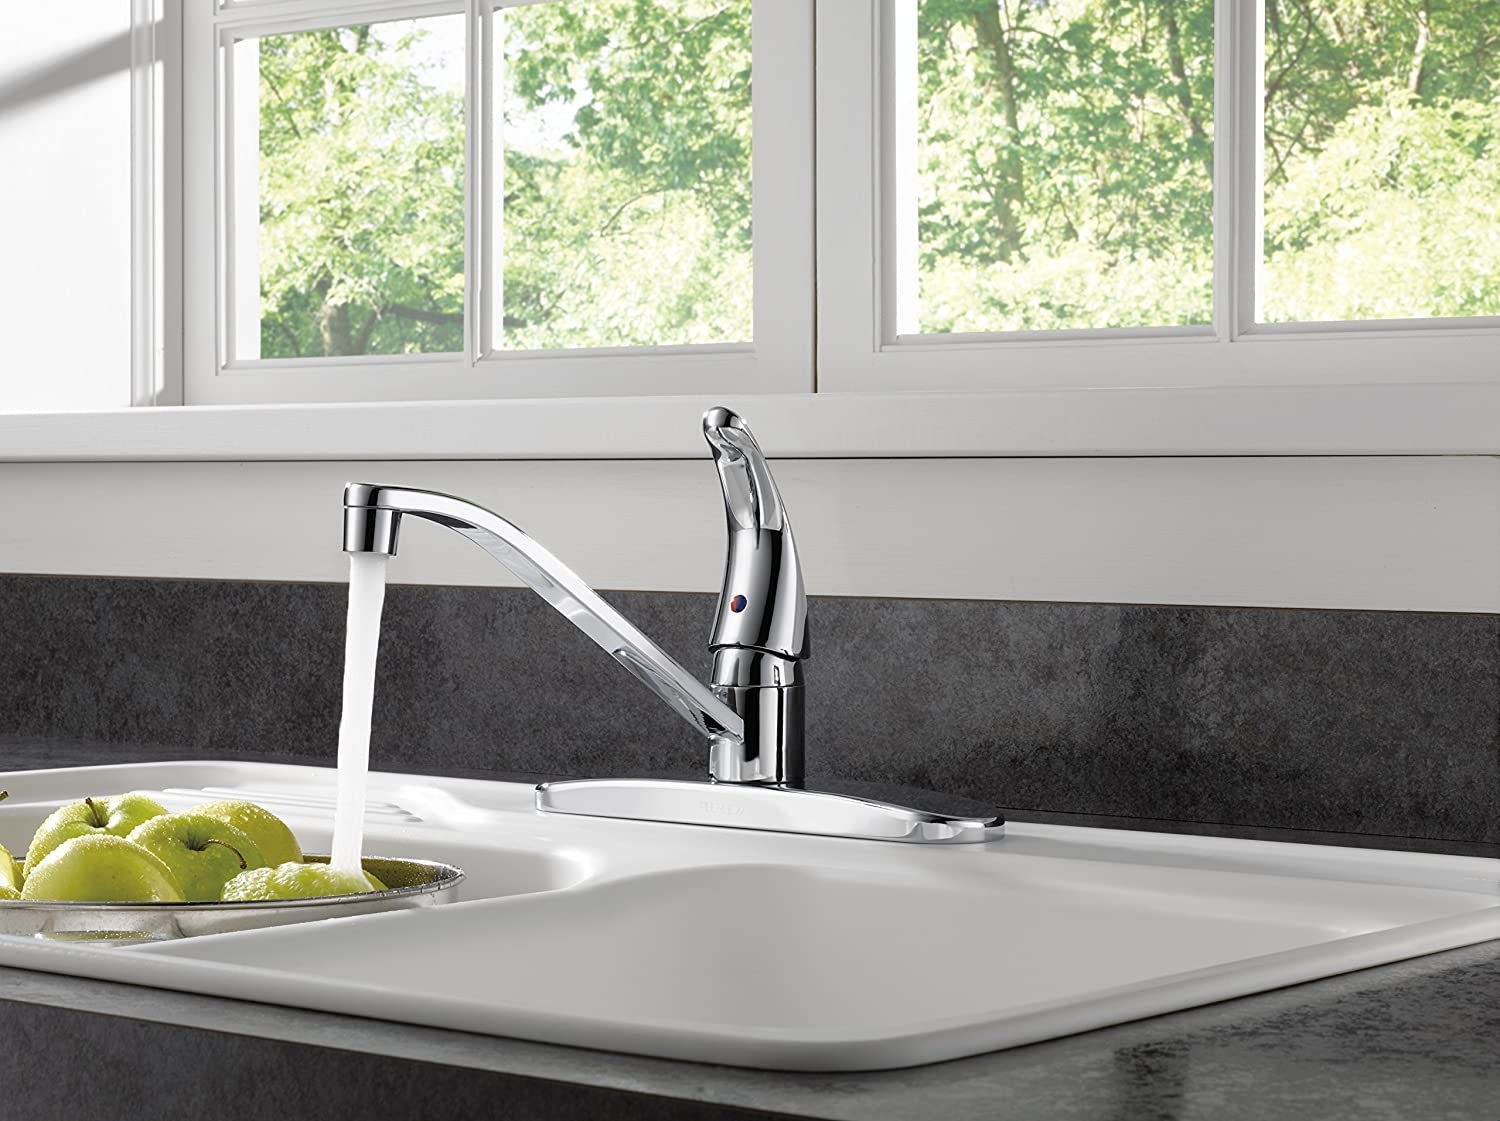 Peerless P110LF Classic Single Handle Kitchen Faucet, Chrome - Touch ...